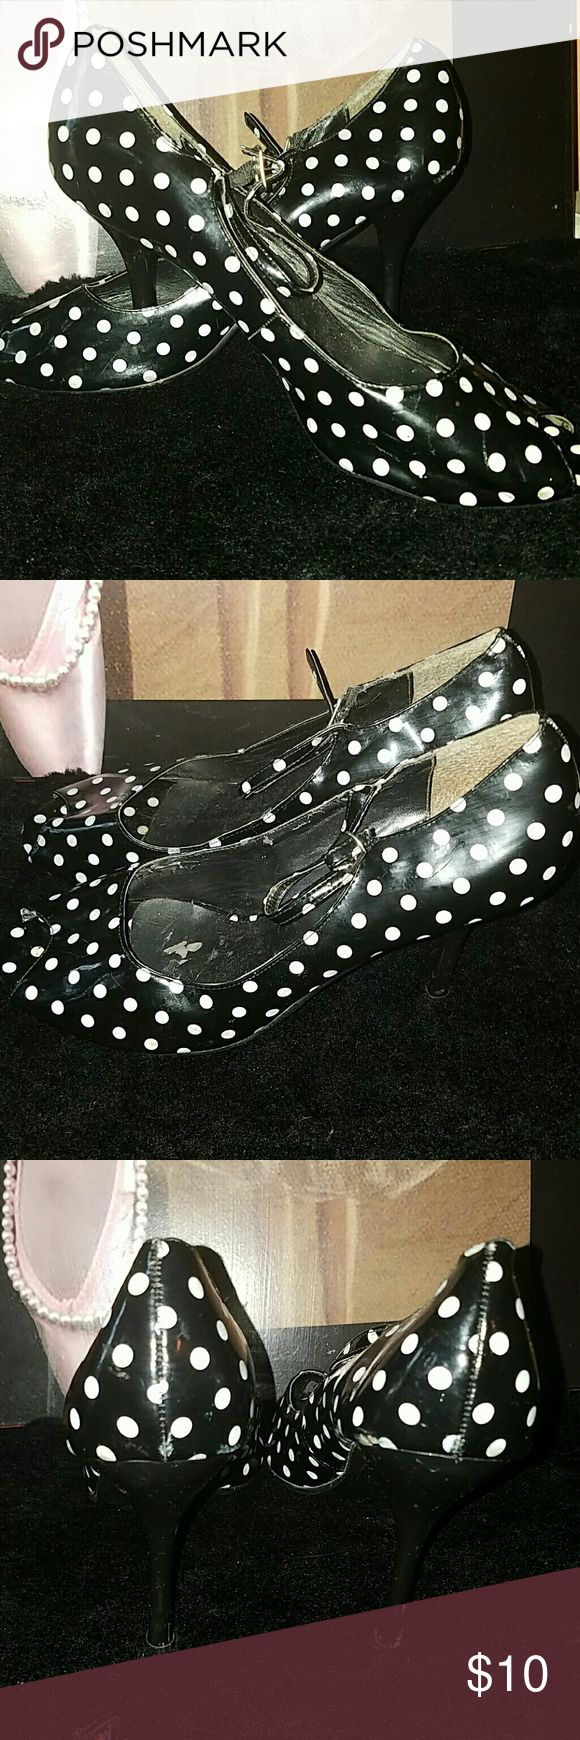 Polka-dot Shoes PeepToe, polkadot,  black and white pumps, with strap, good condition, patent leather,  Breckelles is the name, worn a few times Breckelles Shoes Heels